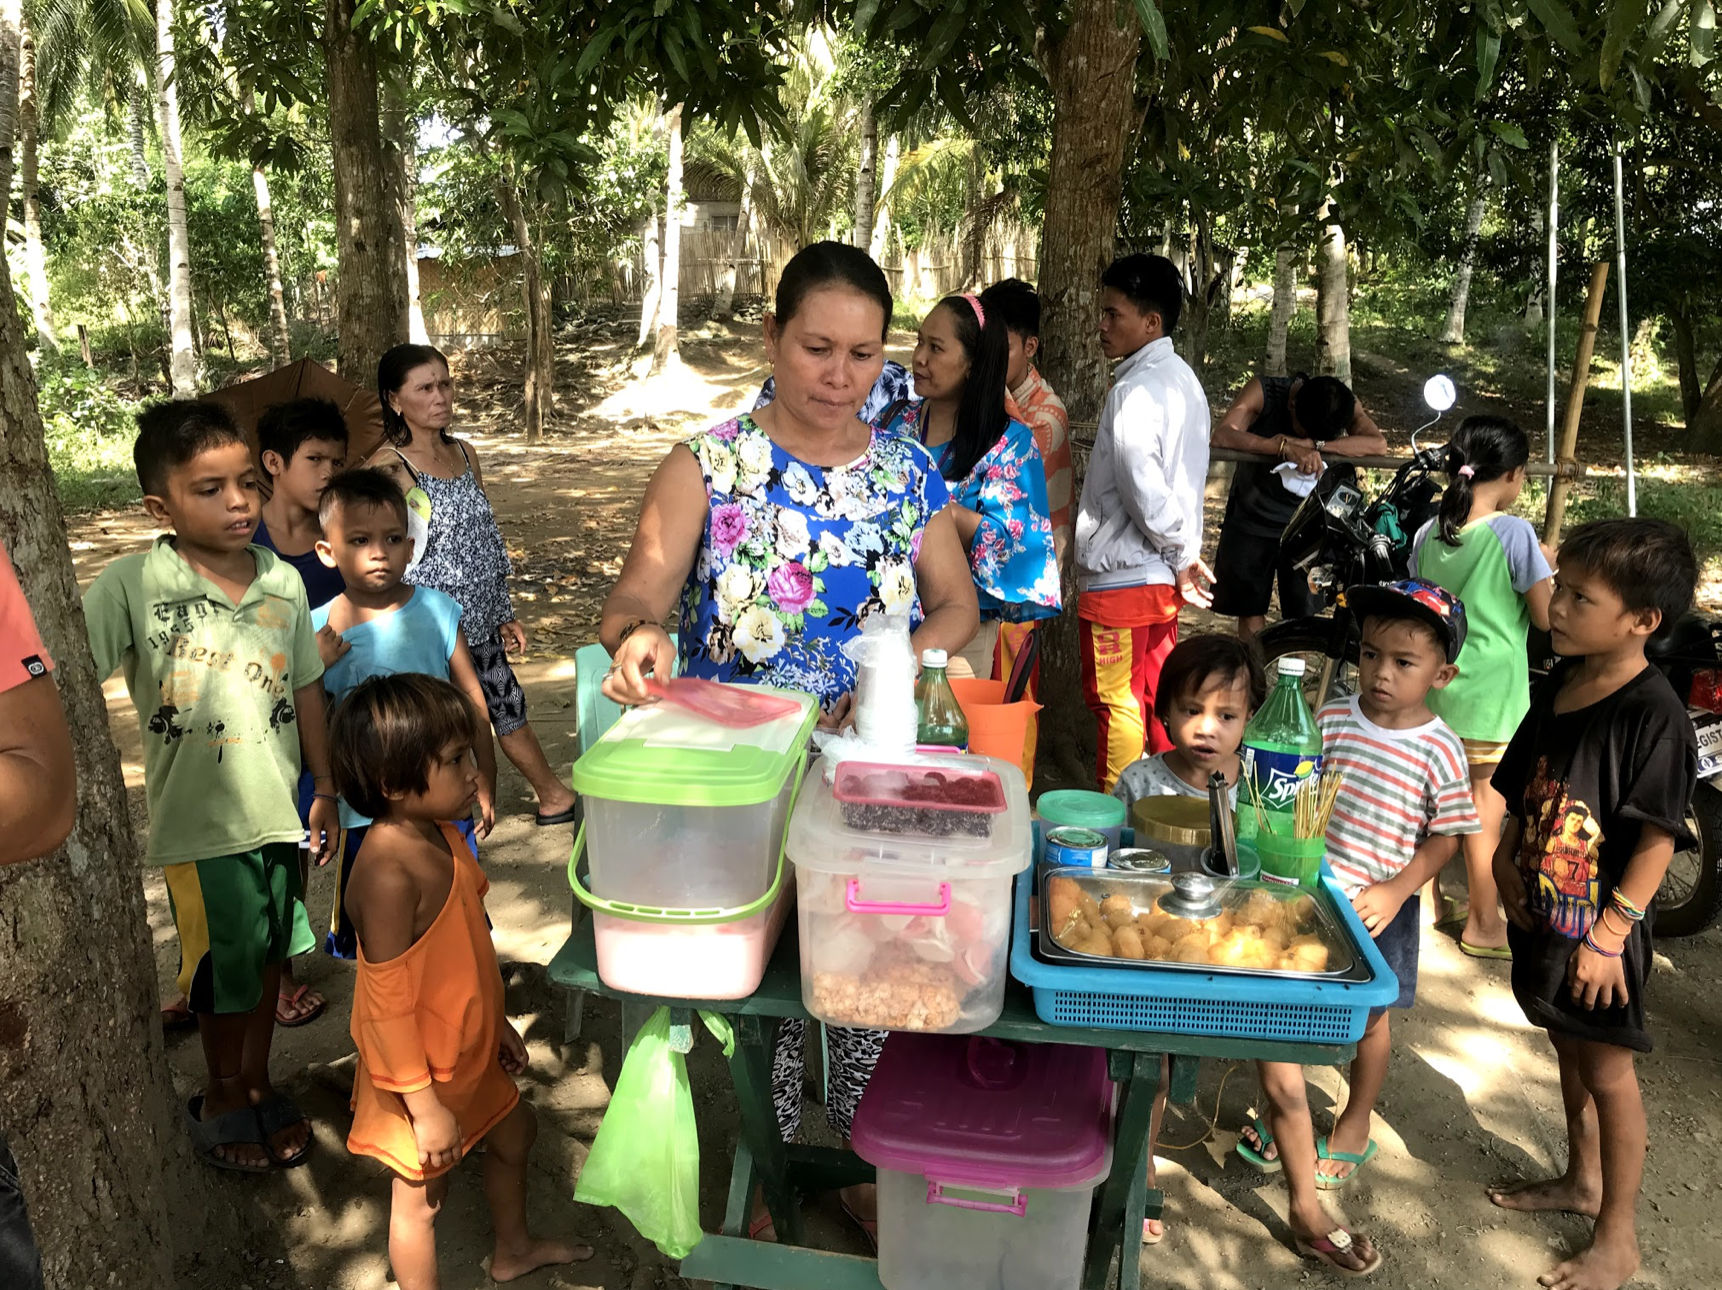 Pancresia was able to open a snack stand with the help of a loan from Wisconsin Microfinance.